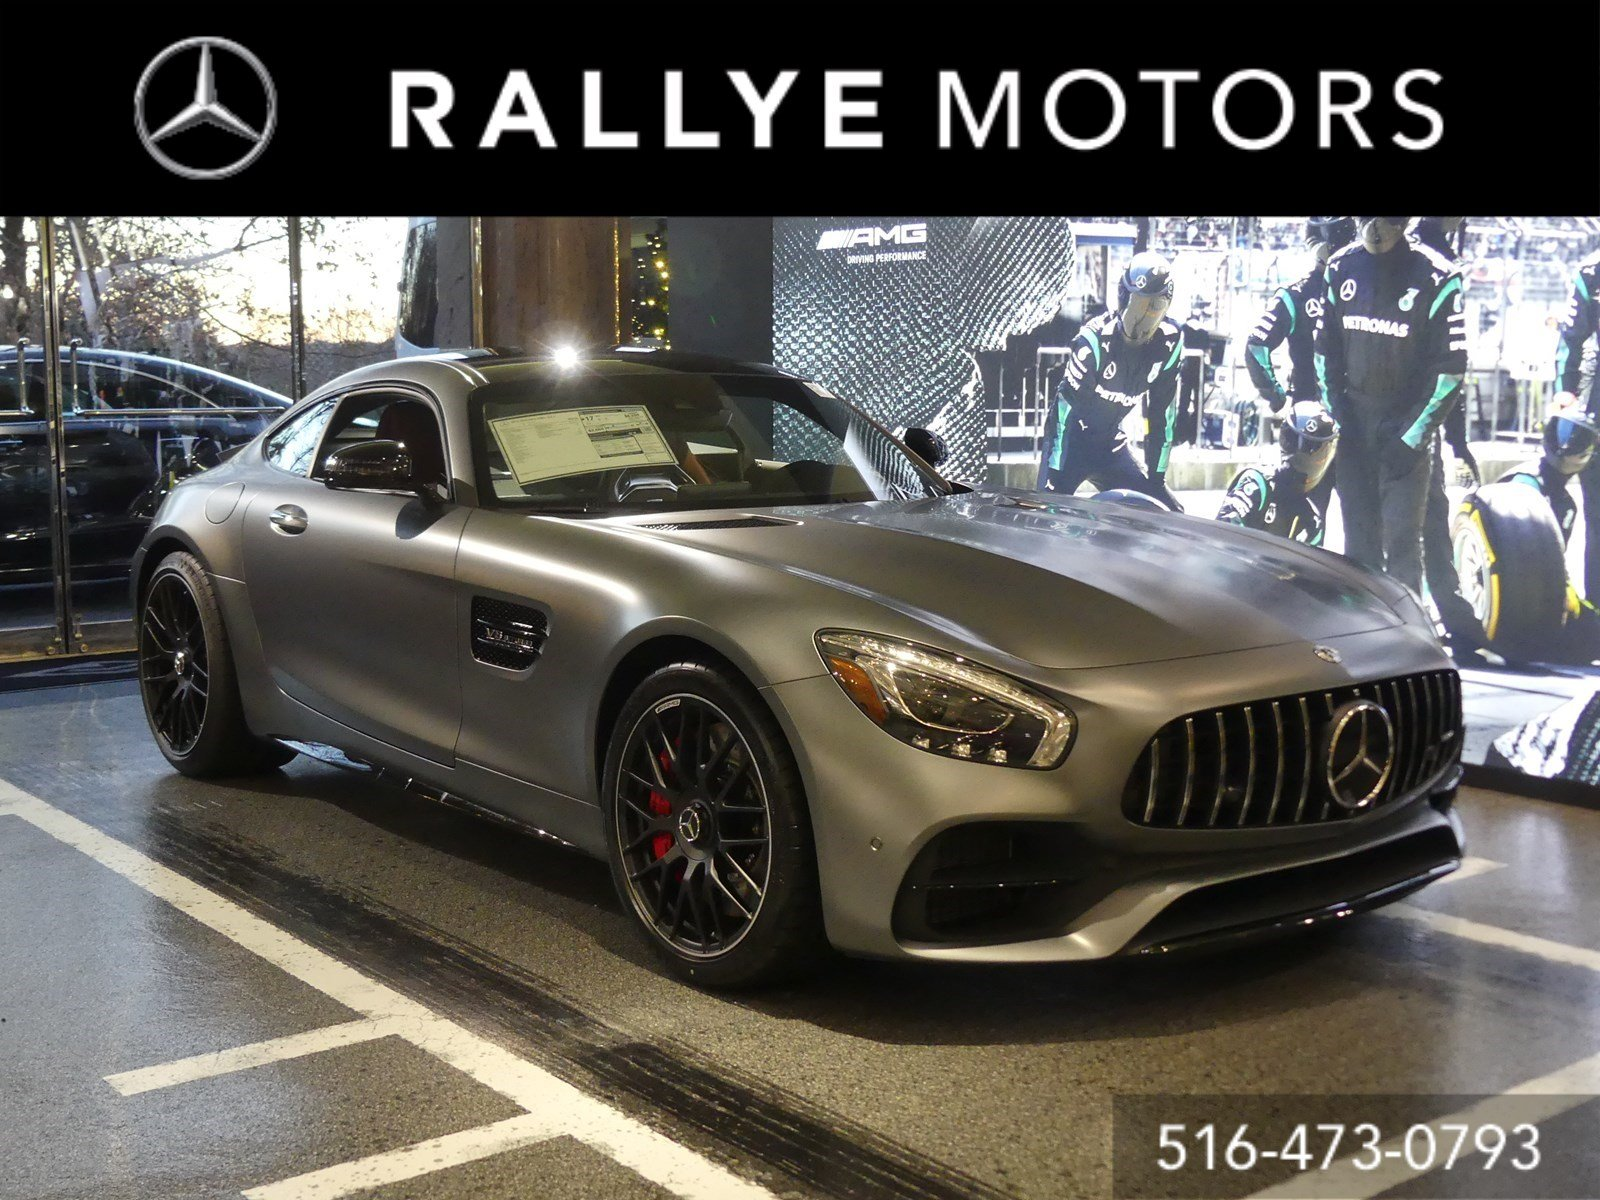 New 2019 Mercedes Benz Amg Gt C 2dr Car In Roslyn 19 72478 The